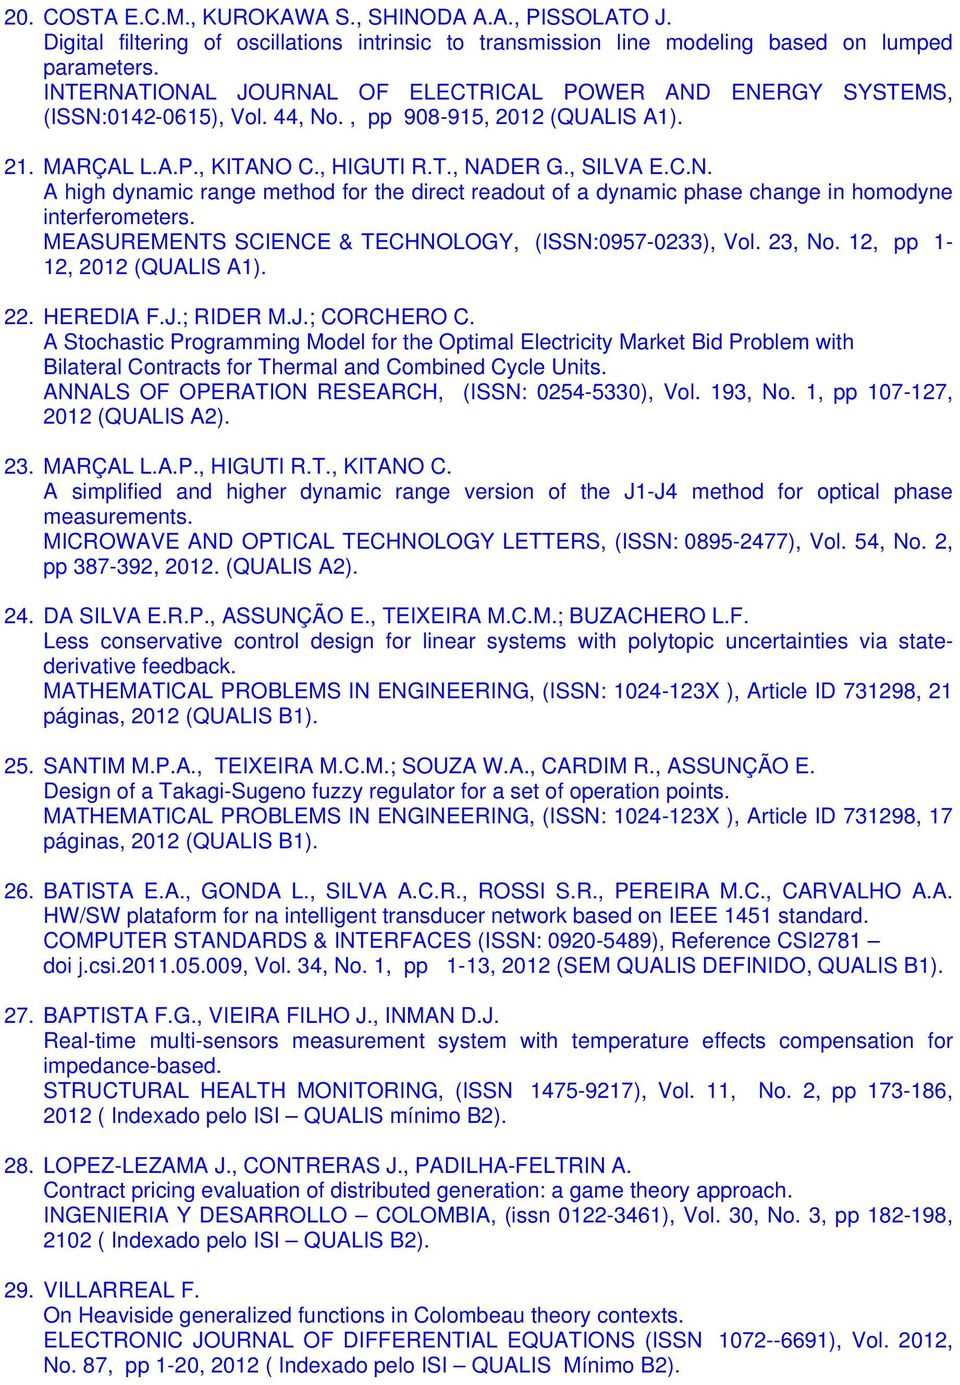 MEASUREMENTS SCIENCE & TECHNOLOGY, (ISSN:0957-0233), Vol. 23, No. 12, pp 1-12, 2012 22. HEREDIA F.J.; RIDER M.J.; CORCHERO C.